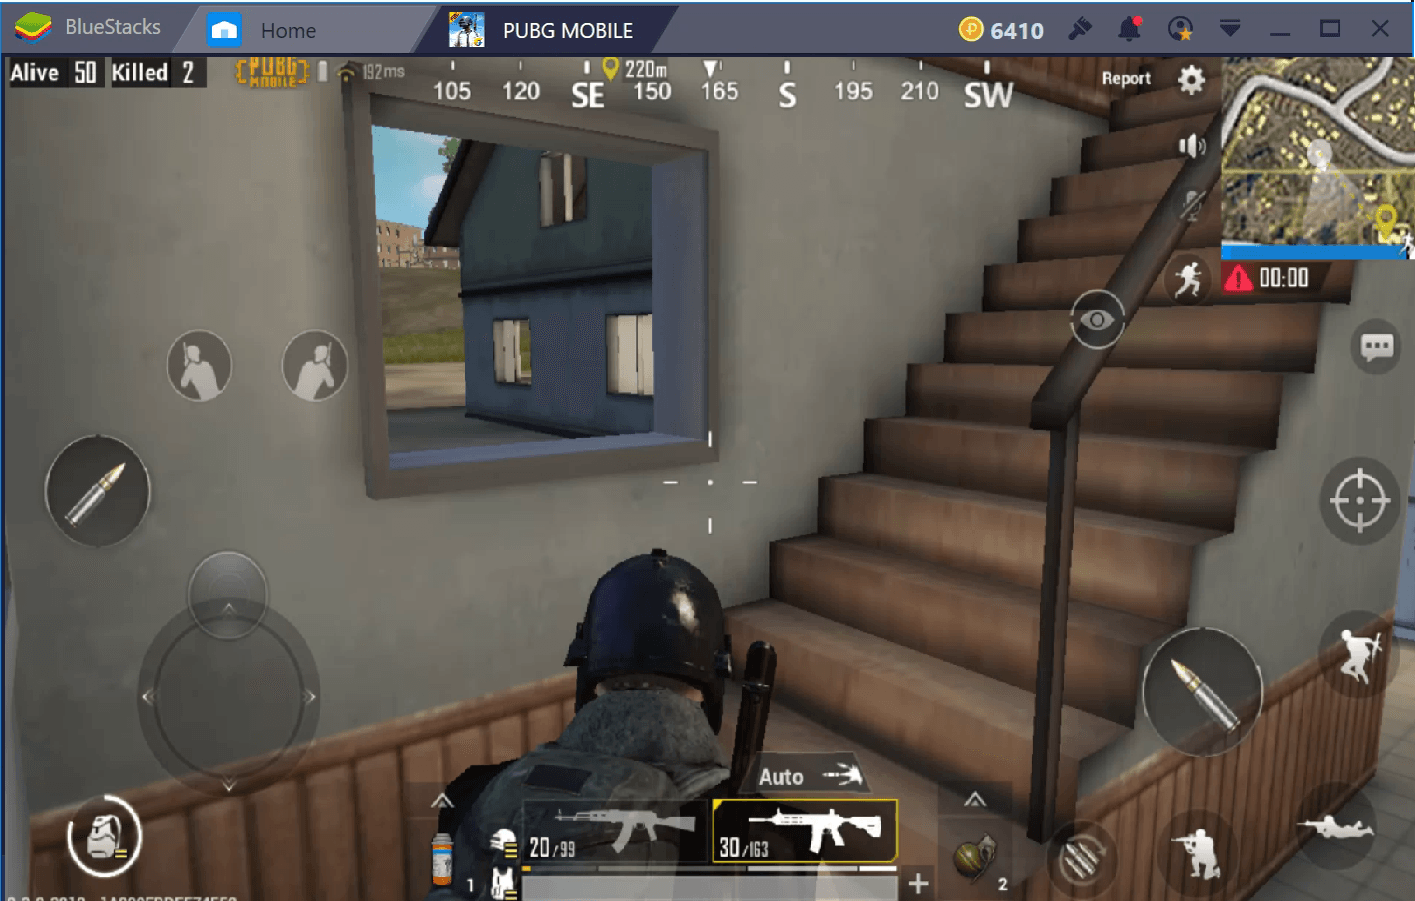 PUBG Mobile on PC: Quick Tips For Becoming A Better Player